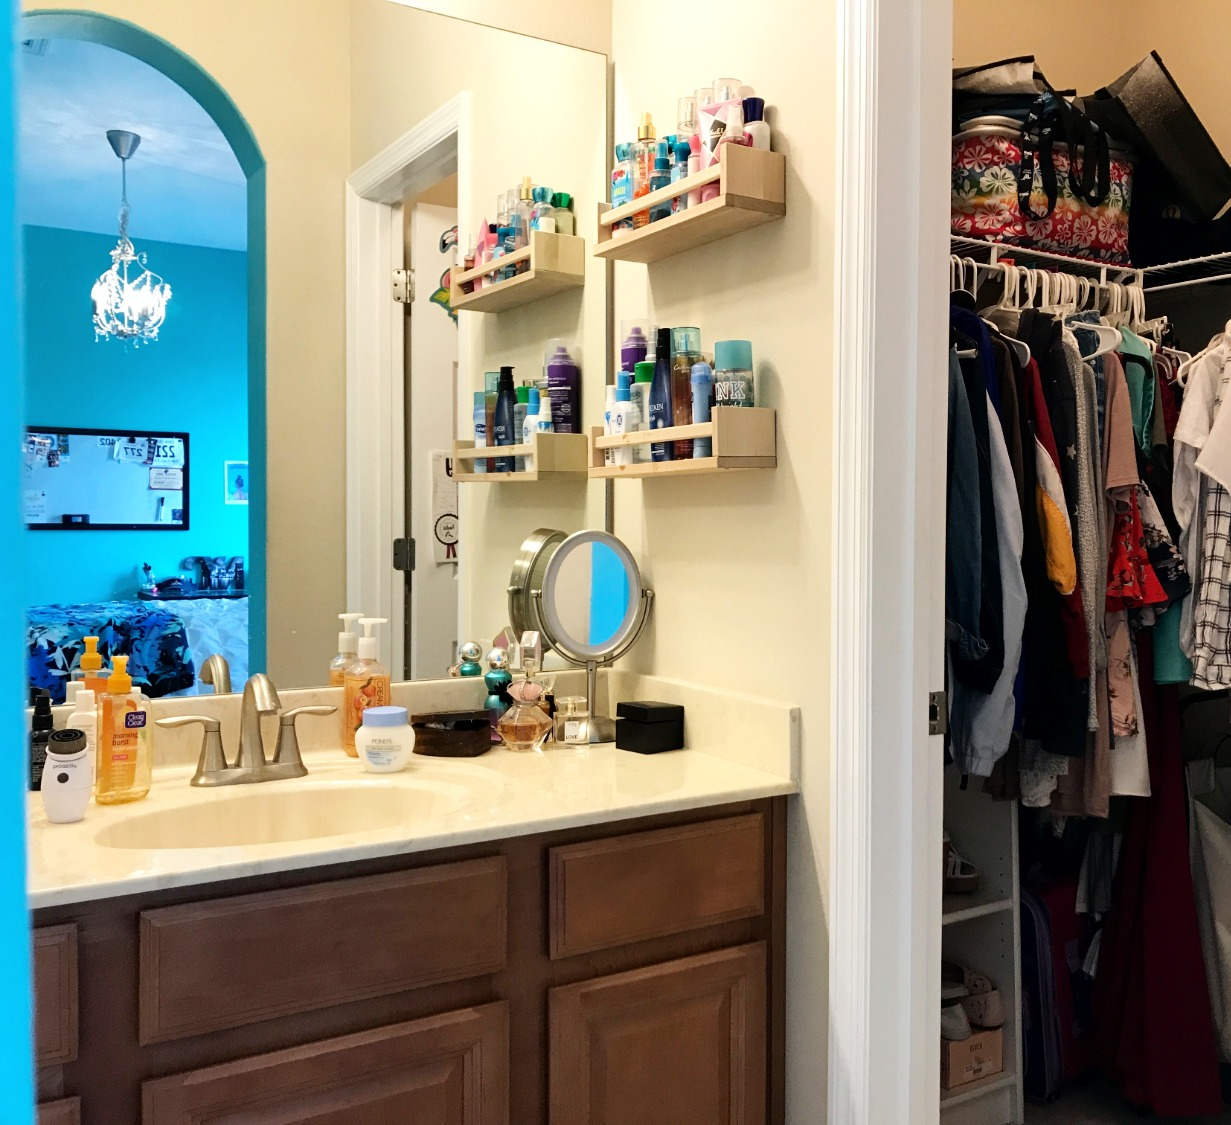 Bath with adjacent closet